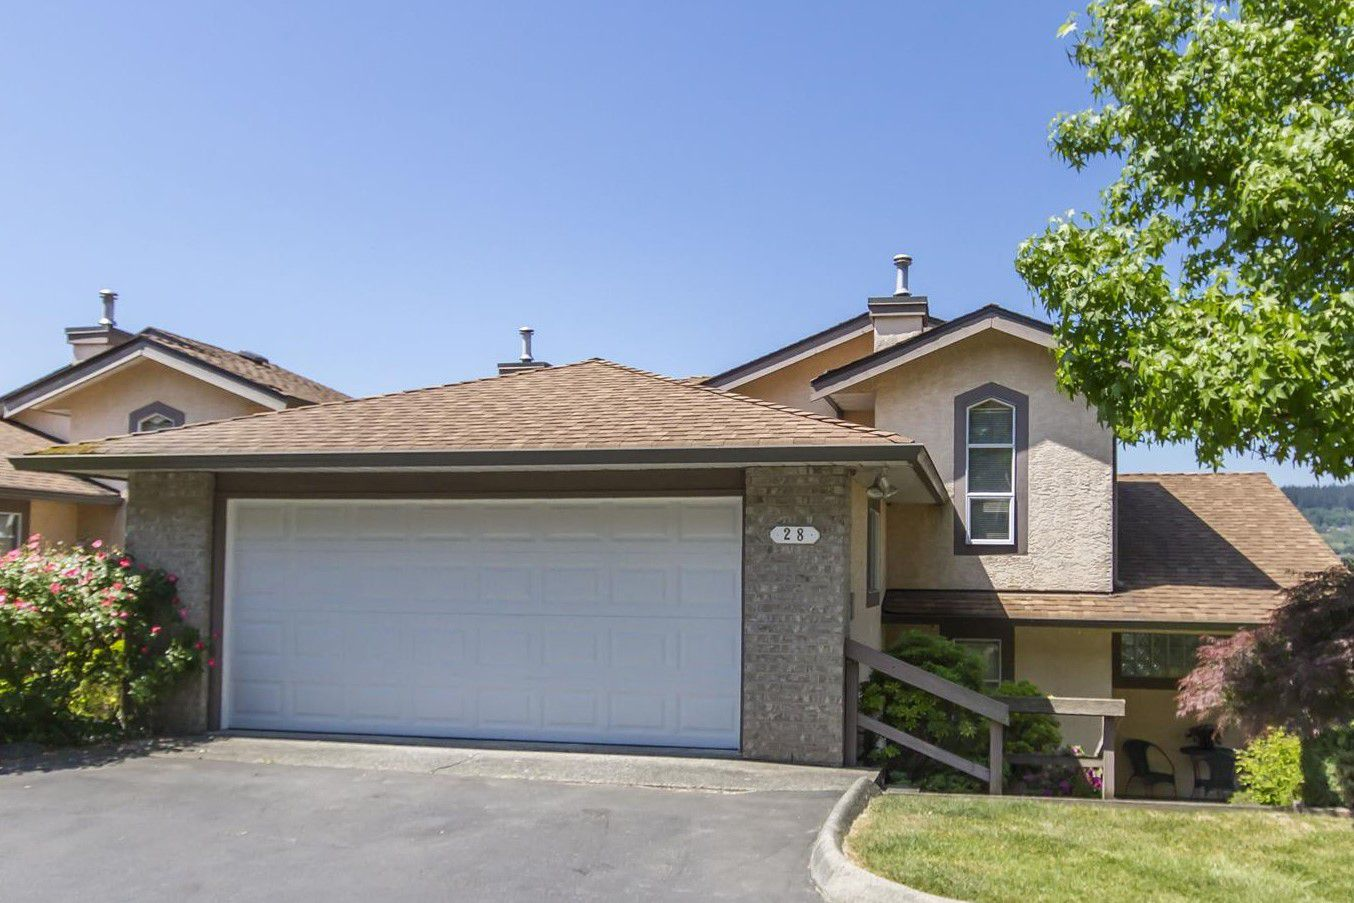 """Main Photo: 28 1238 EASTERN Drive in Port Coquitlam: Citadel PQ Townhouse for sale in """"PARKVIEW RIDGE"""" : MLS®# R2271710"""